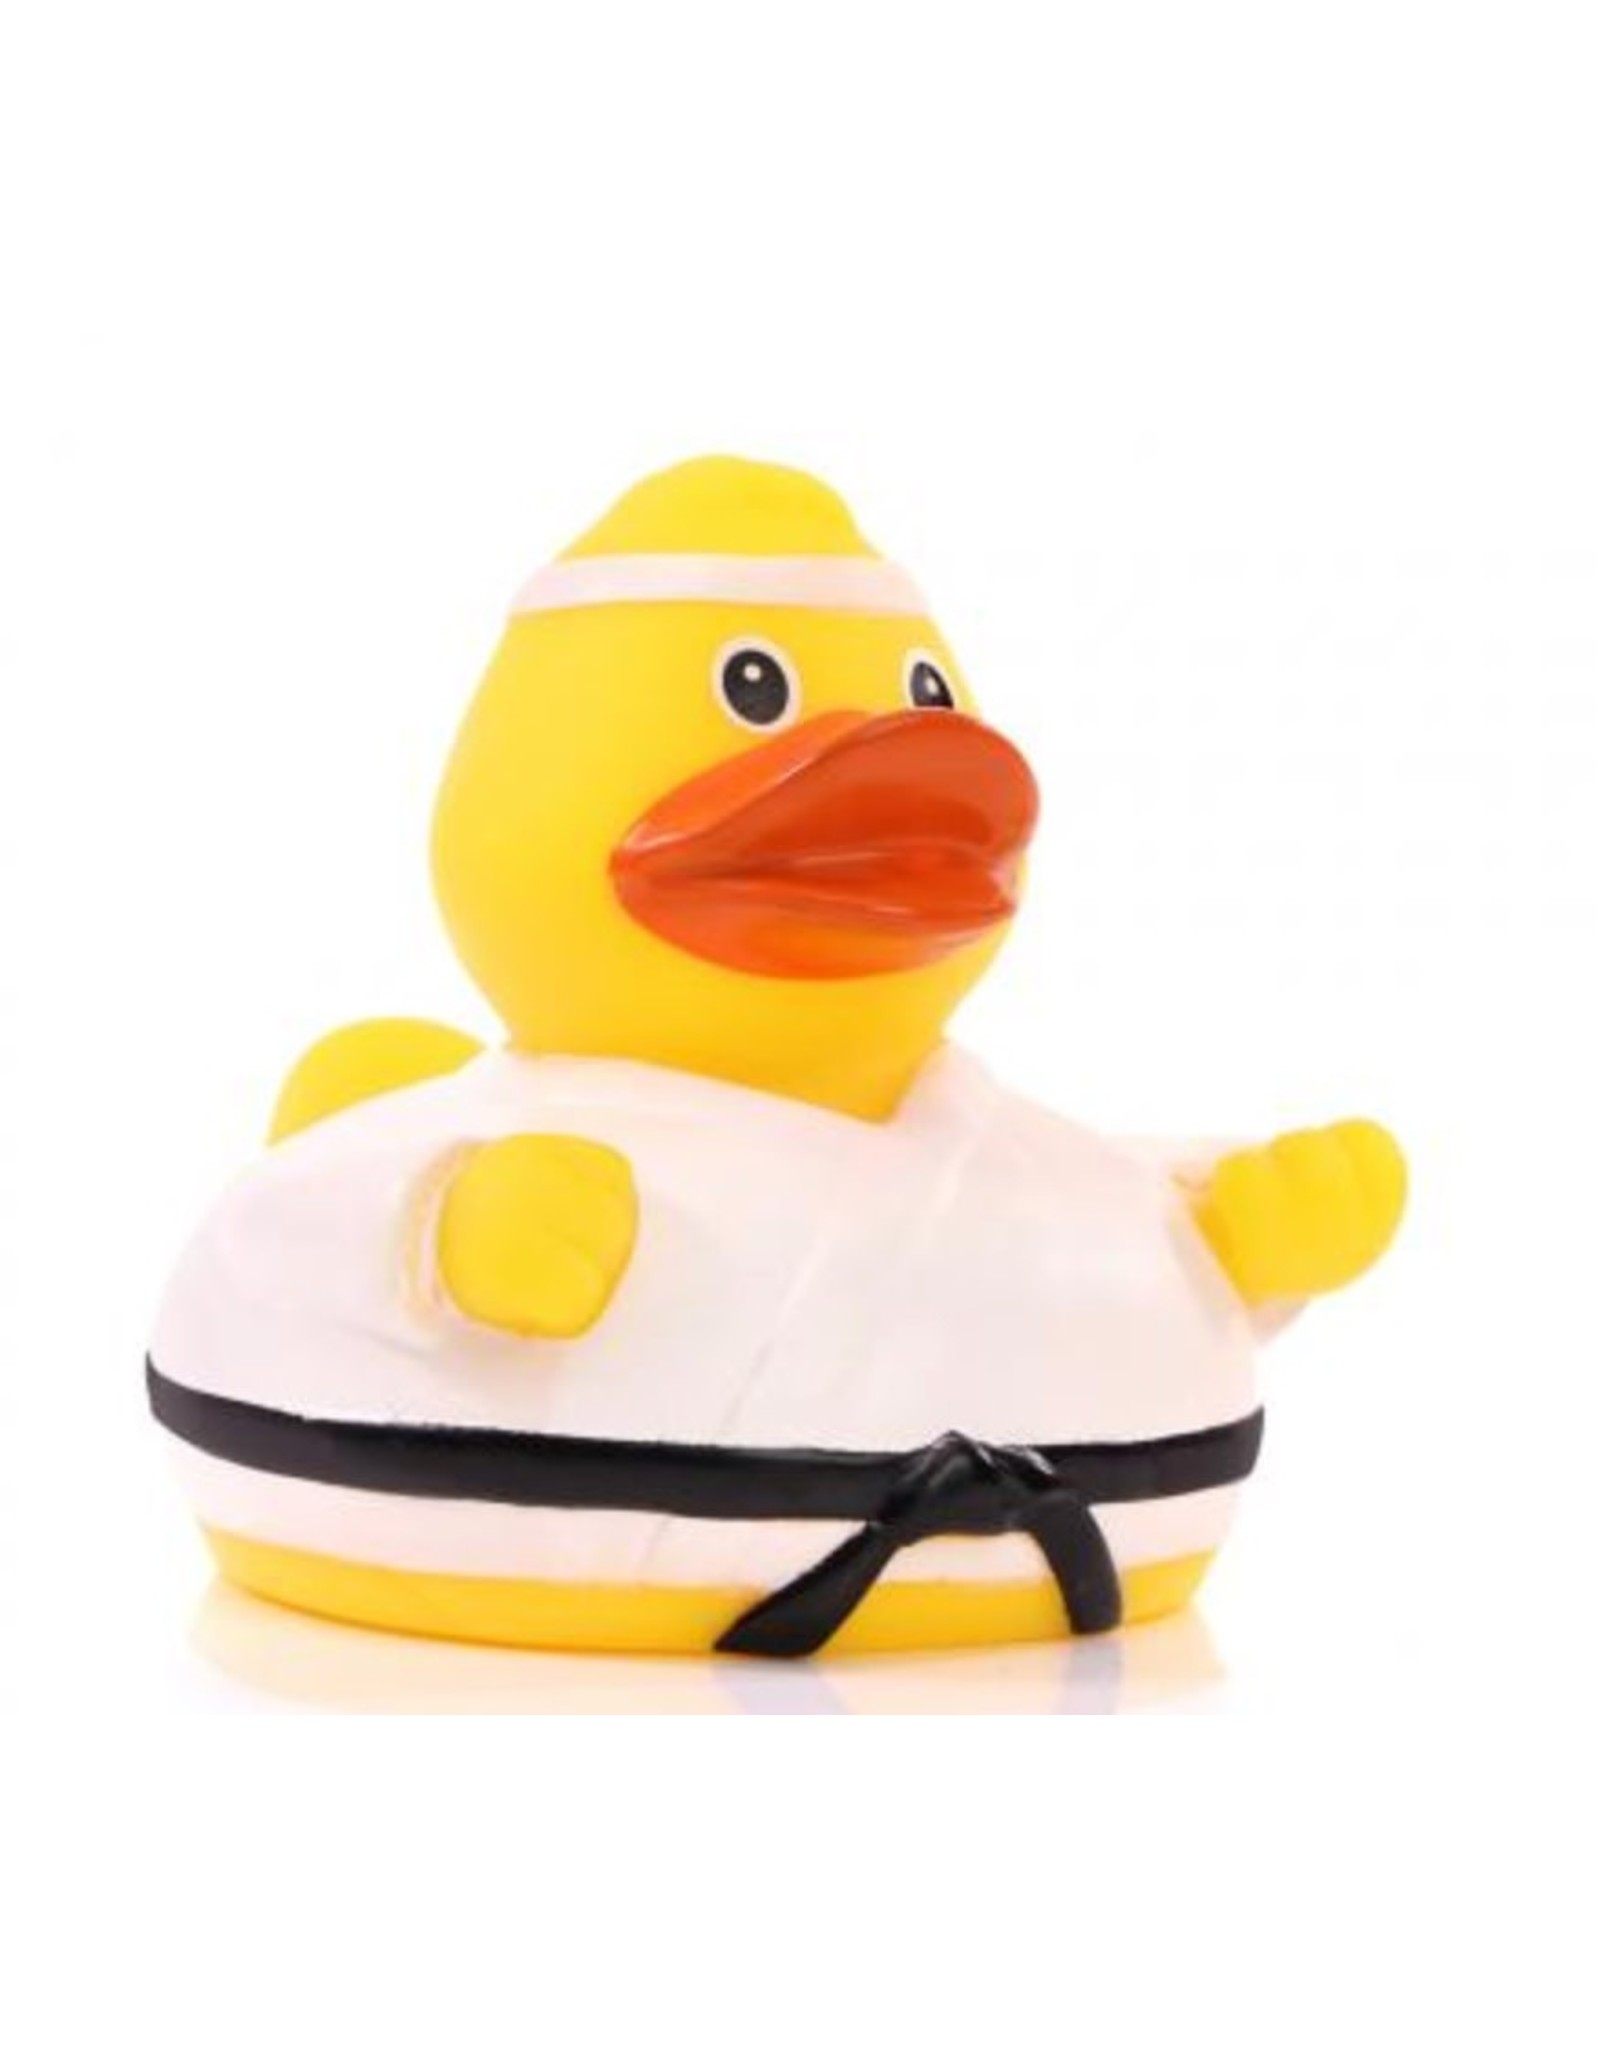 Martial Arts Rubber Duck